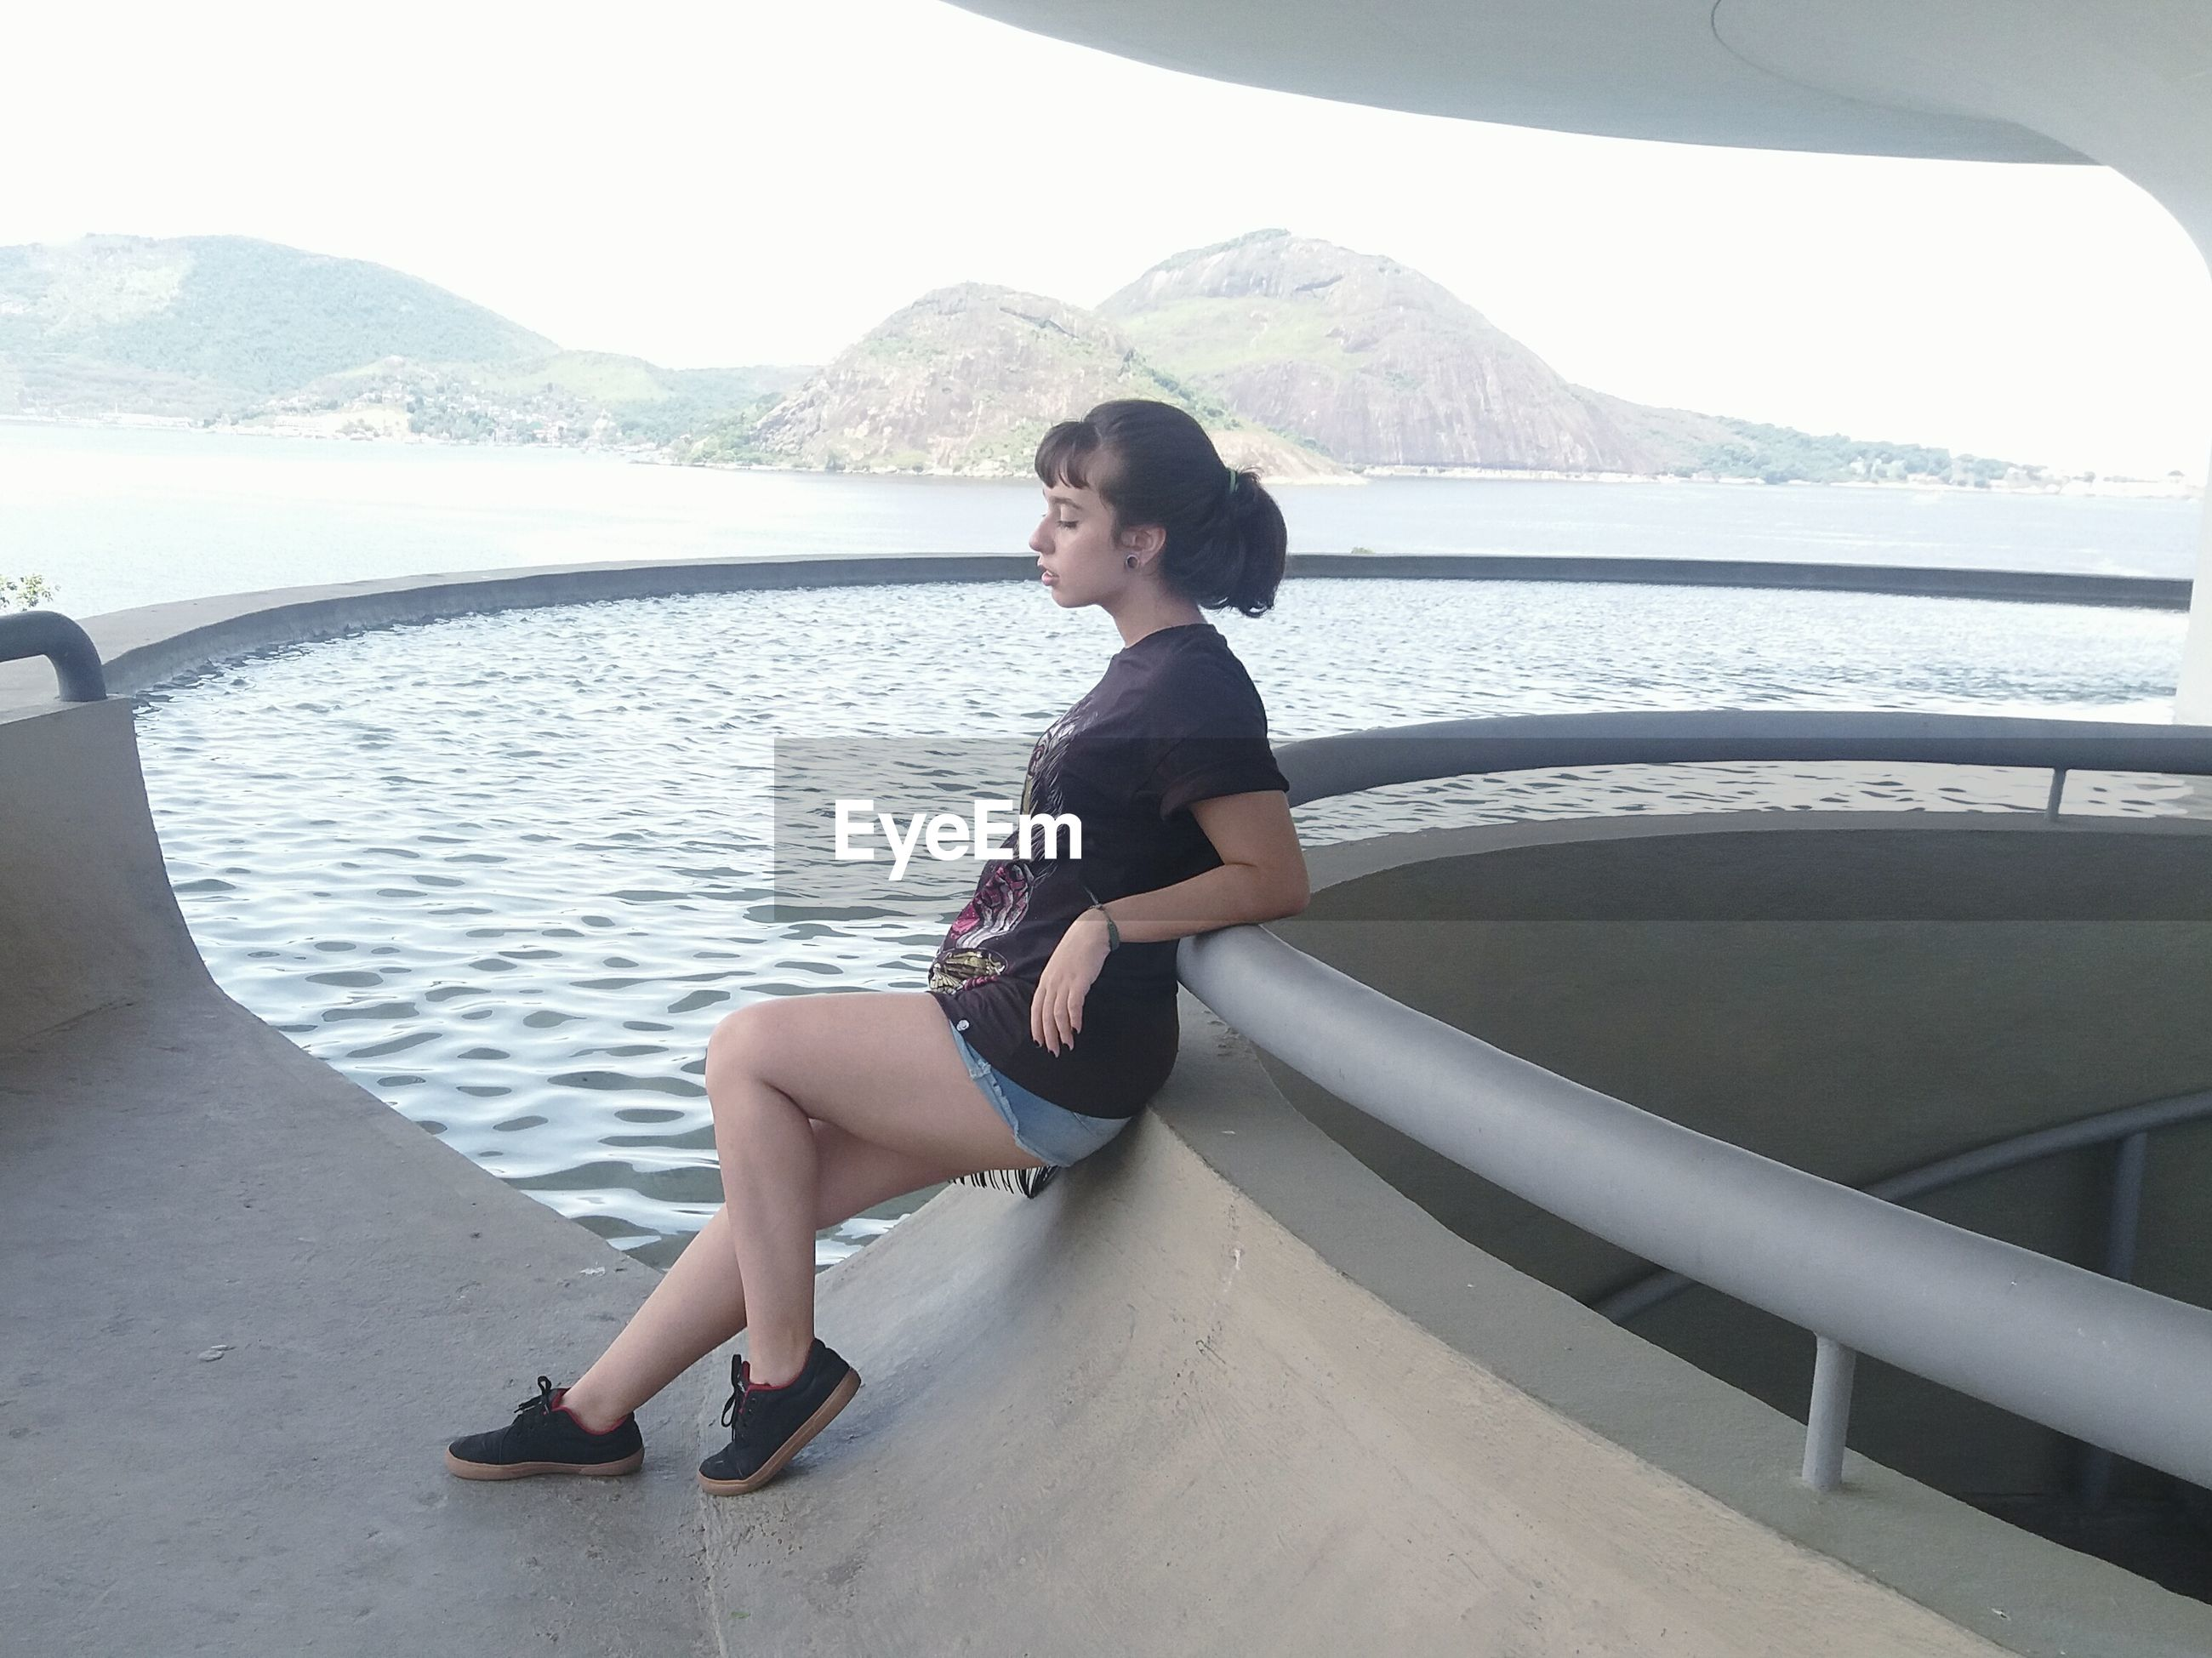 full length, sitting, side view, one person, lifestyles, day, water, sports clothing, people, young adult, adults only, adult, outdoors, sky, nature, one woman only, only women, one young woman only, beautiful woman, self improvement